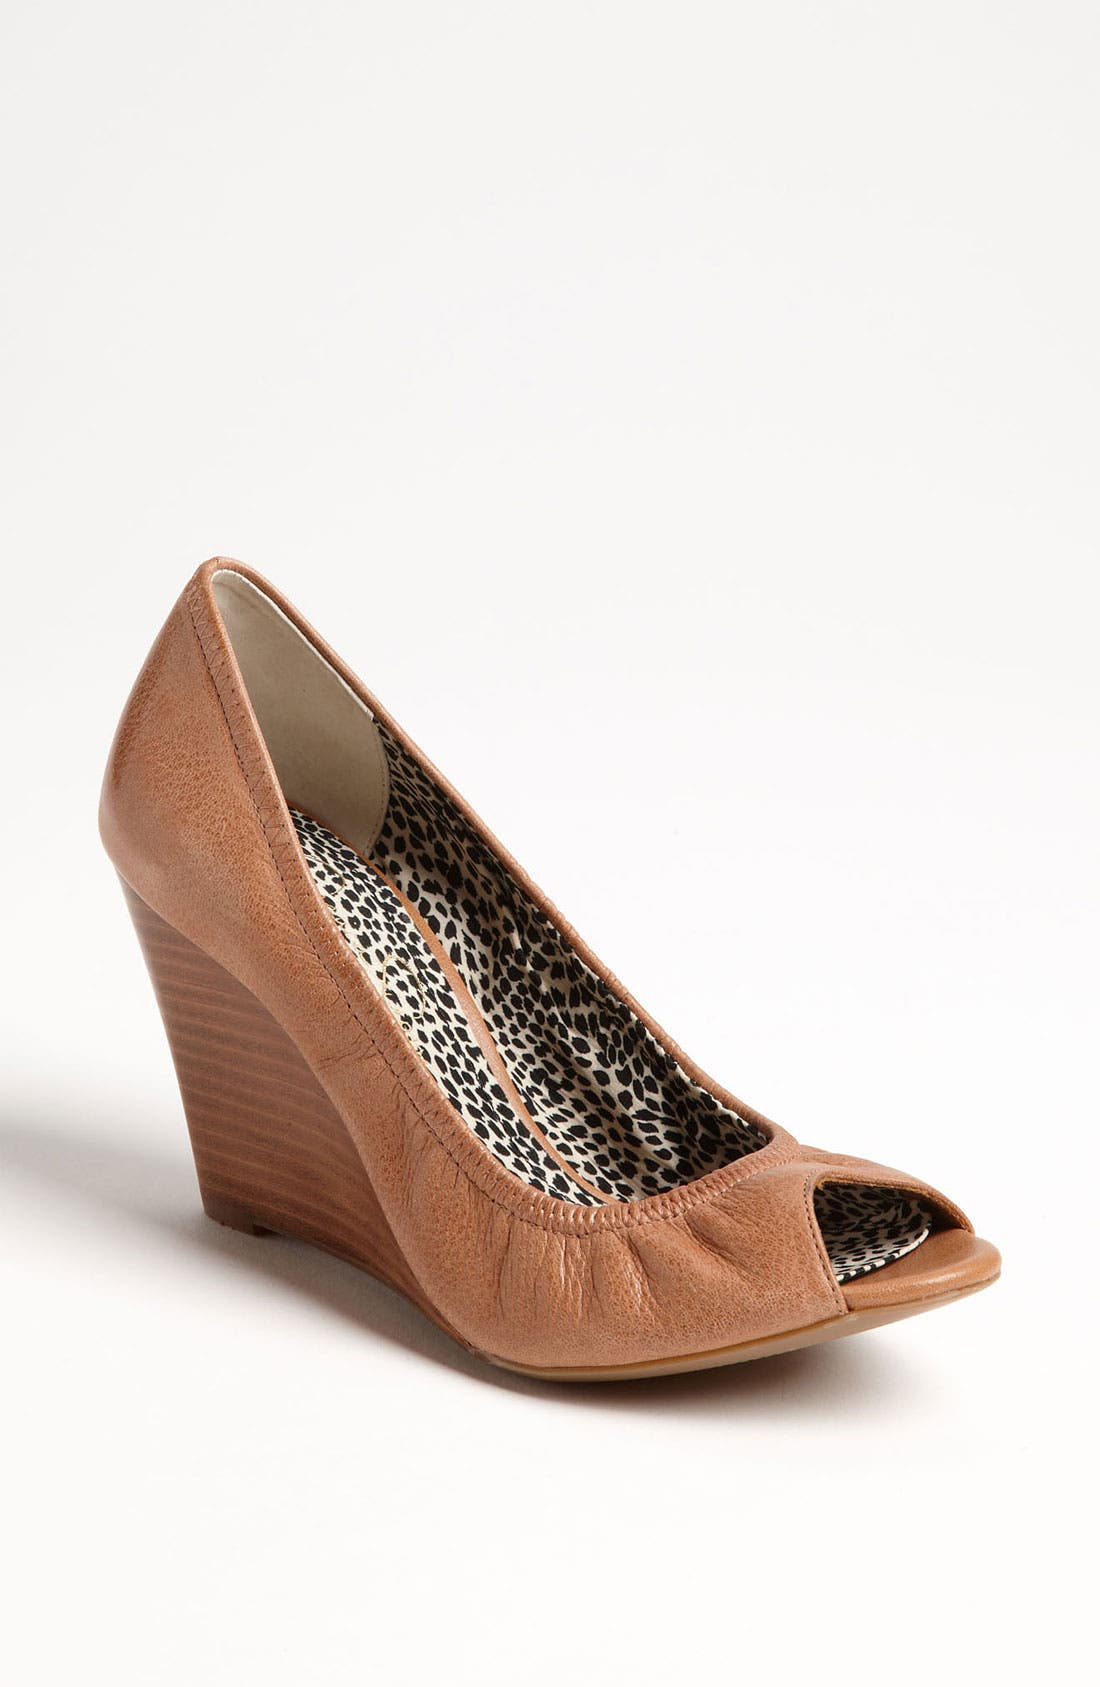 Alternate Image 1 Selected - Jessica Simpson 'Noah' Wedge Pump (Special Purchase) (Nordstrom Exclusive)